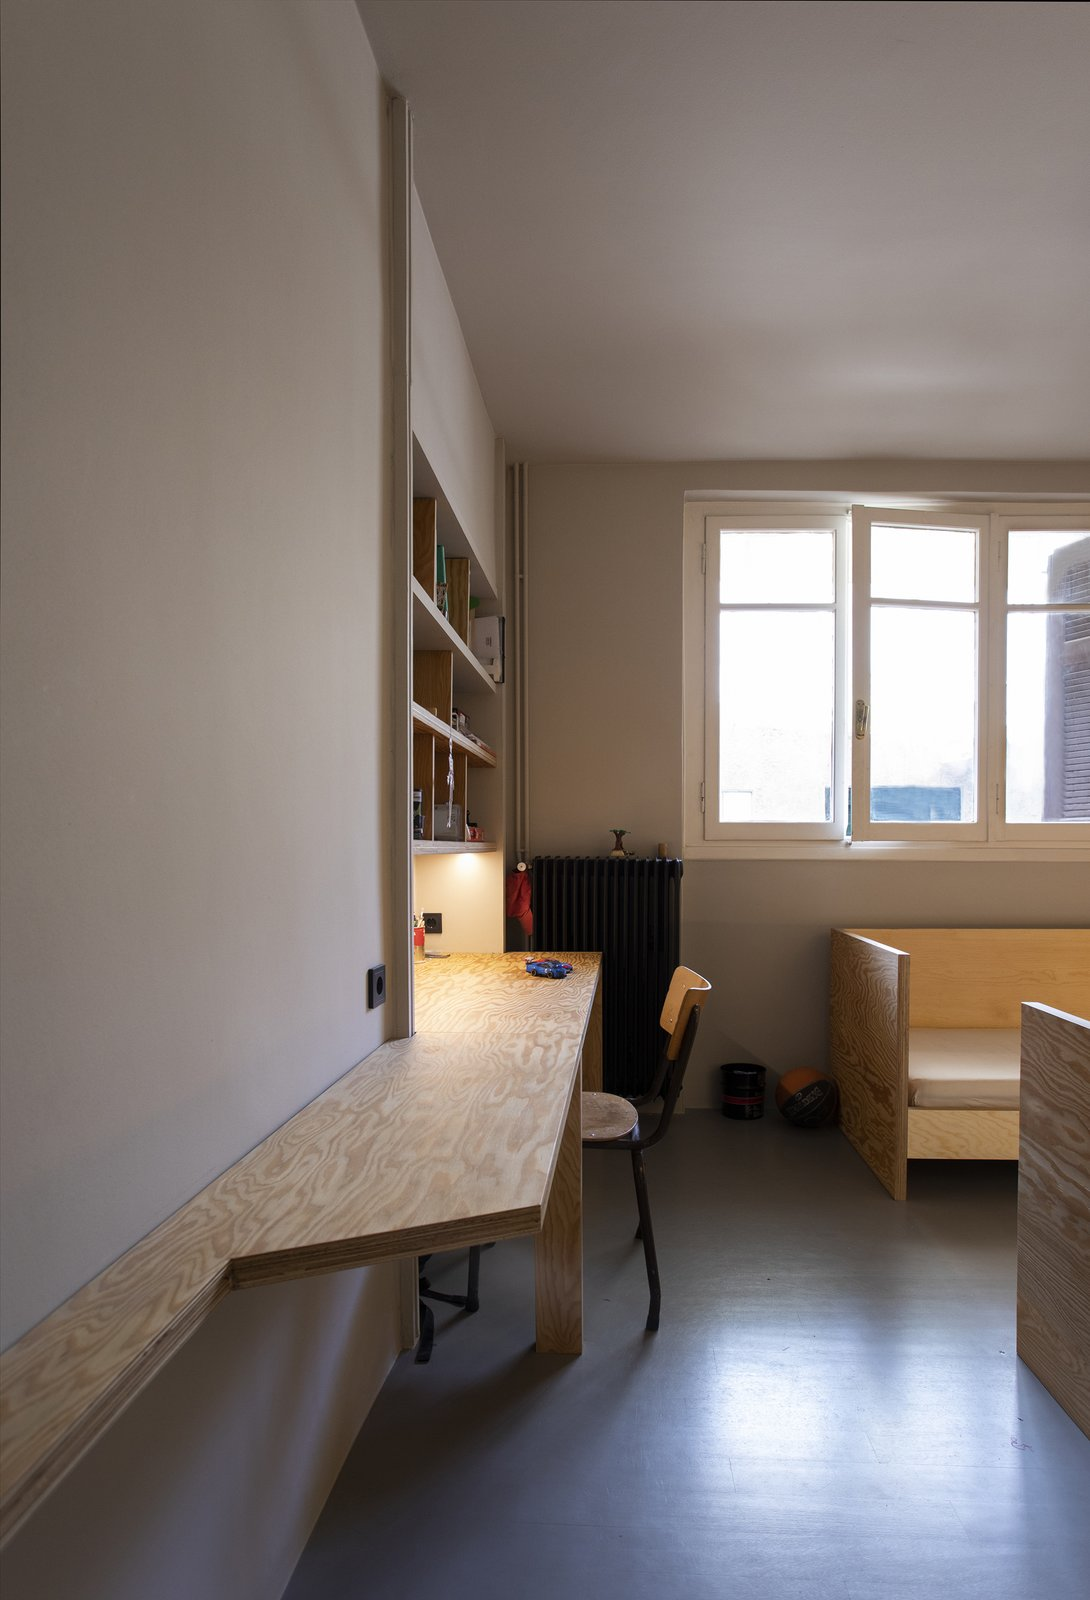 Bedroom, Chair, and Bed The custom desk maximizes the available square footage.  Photo 10 of 13 in A Crisp Athens Apartment Makes Room for a Family's Home Brewery